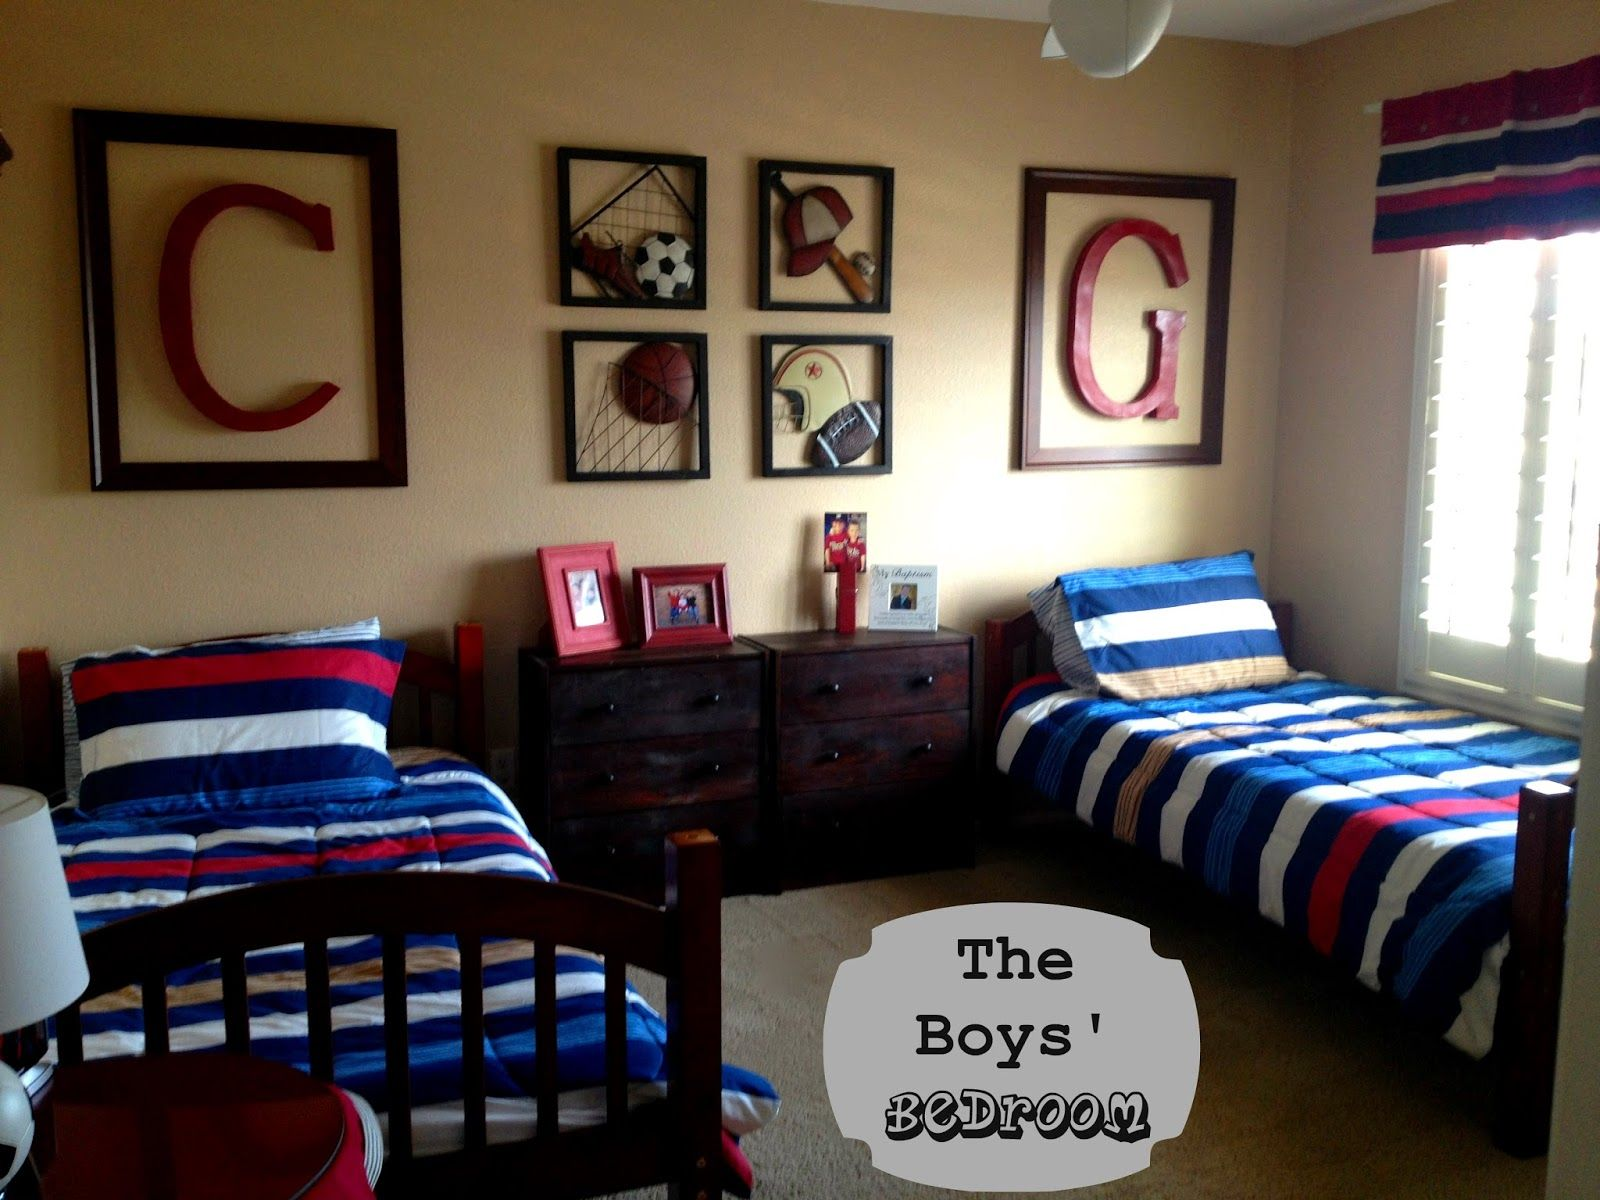 the boys sports themed bedroom i love the large framed initials - Boys Bedroom Decorating Ideas Sports